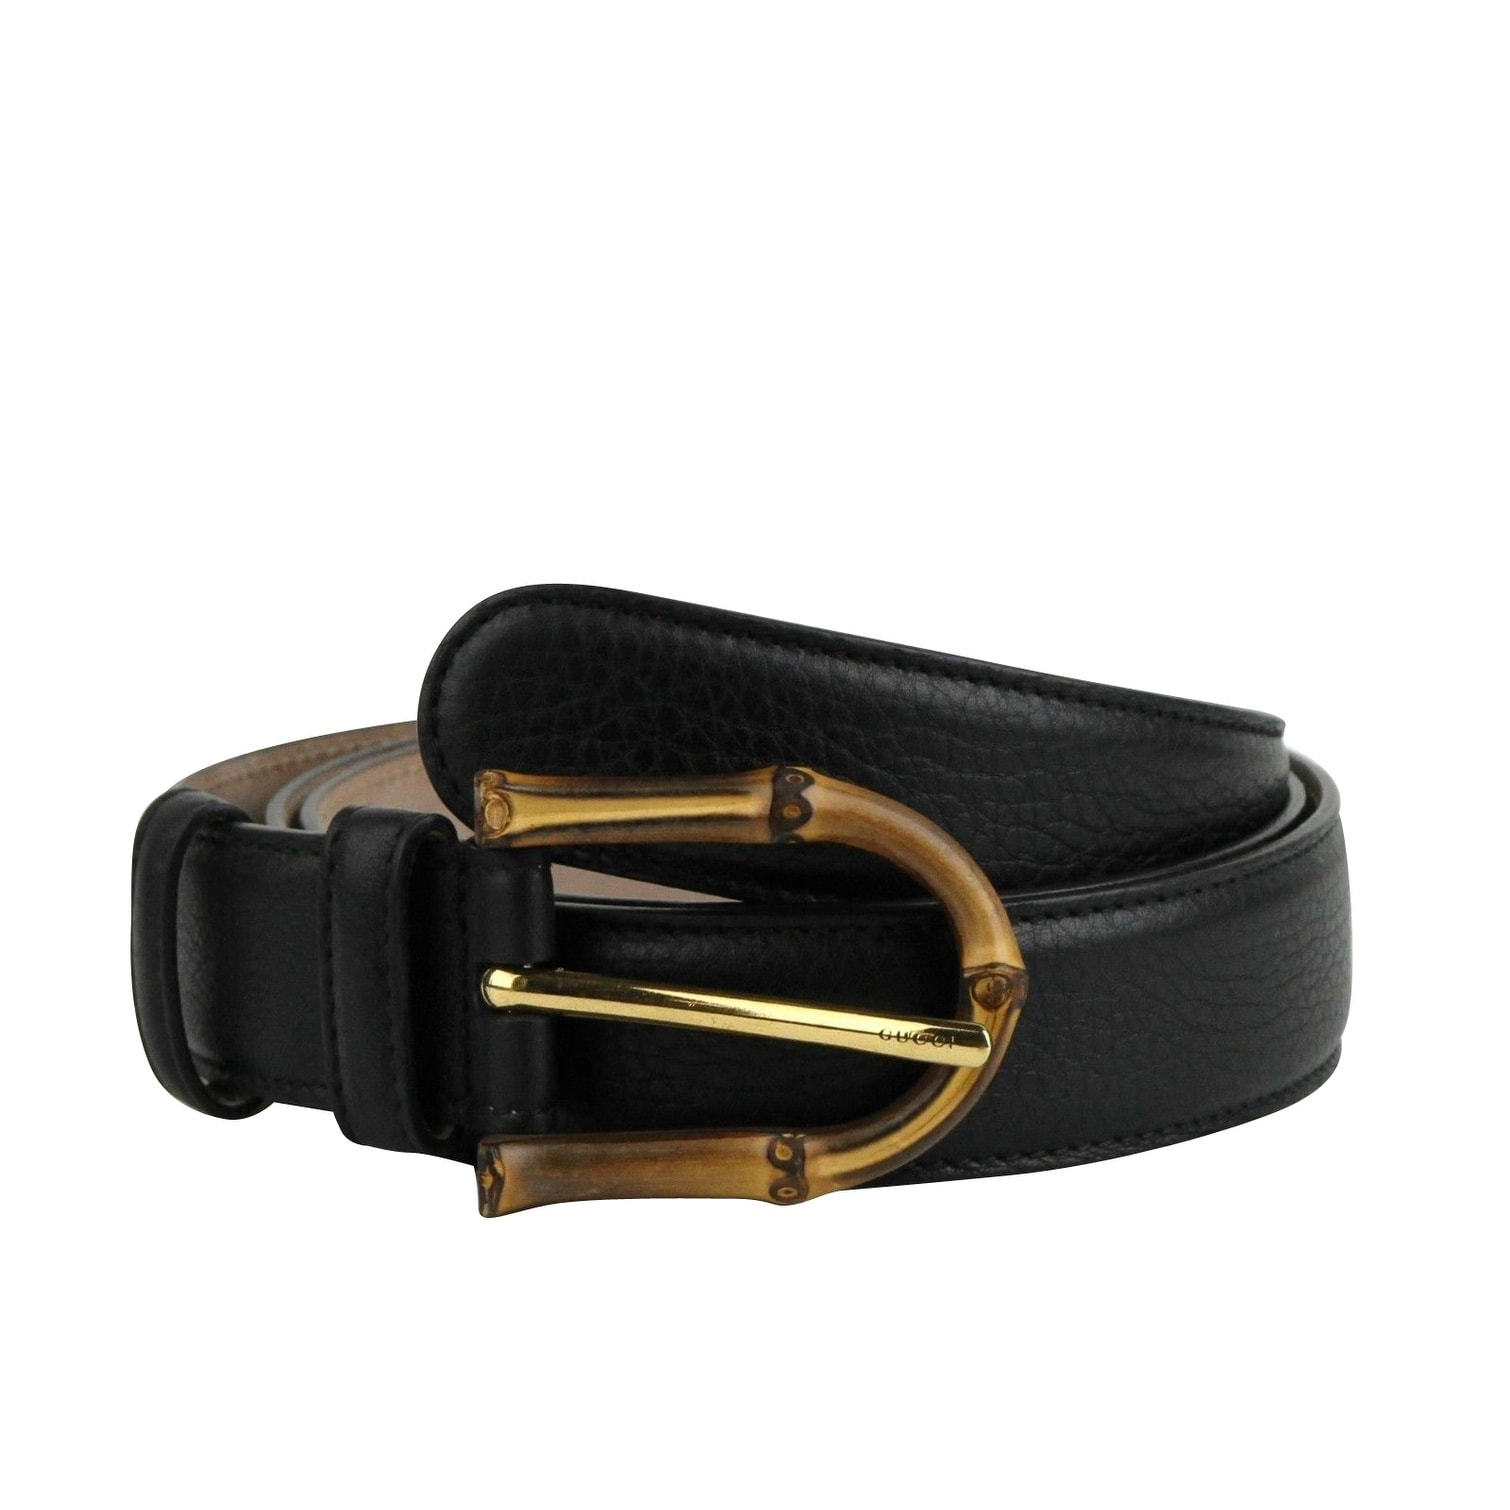 Gucci Women\u0027s Bamboo Black Leather Belt With Buckle 322954 1000 Women\u0027s (95  / 38)